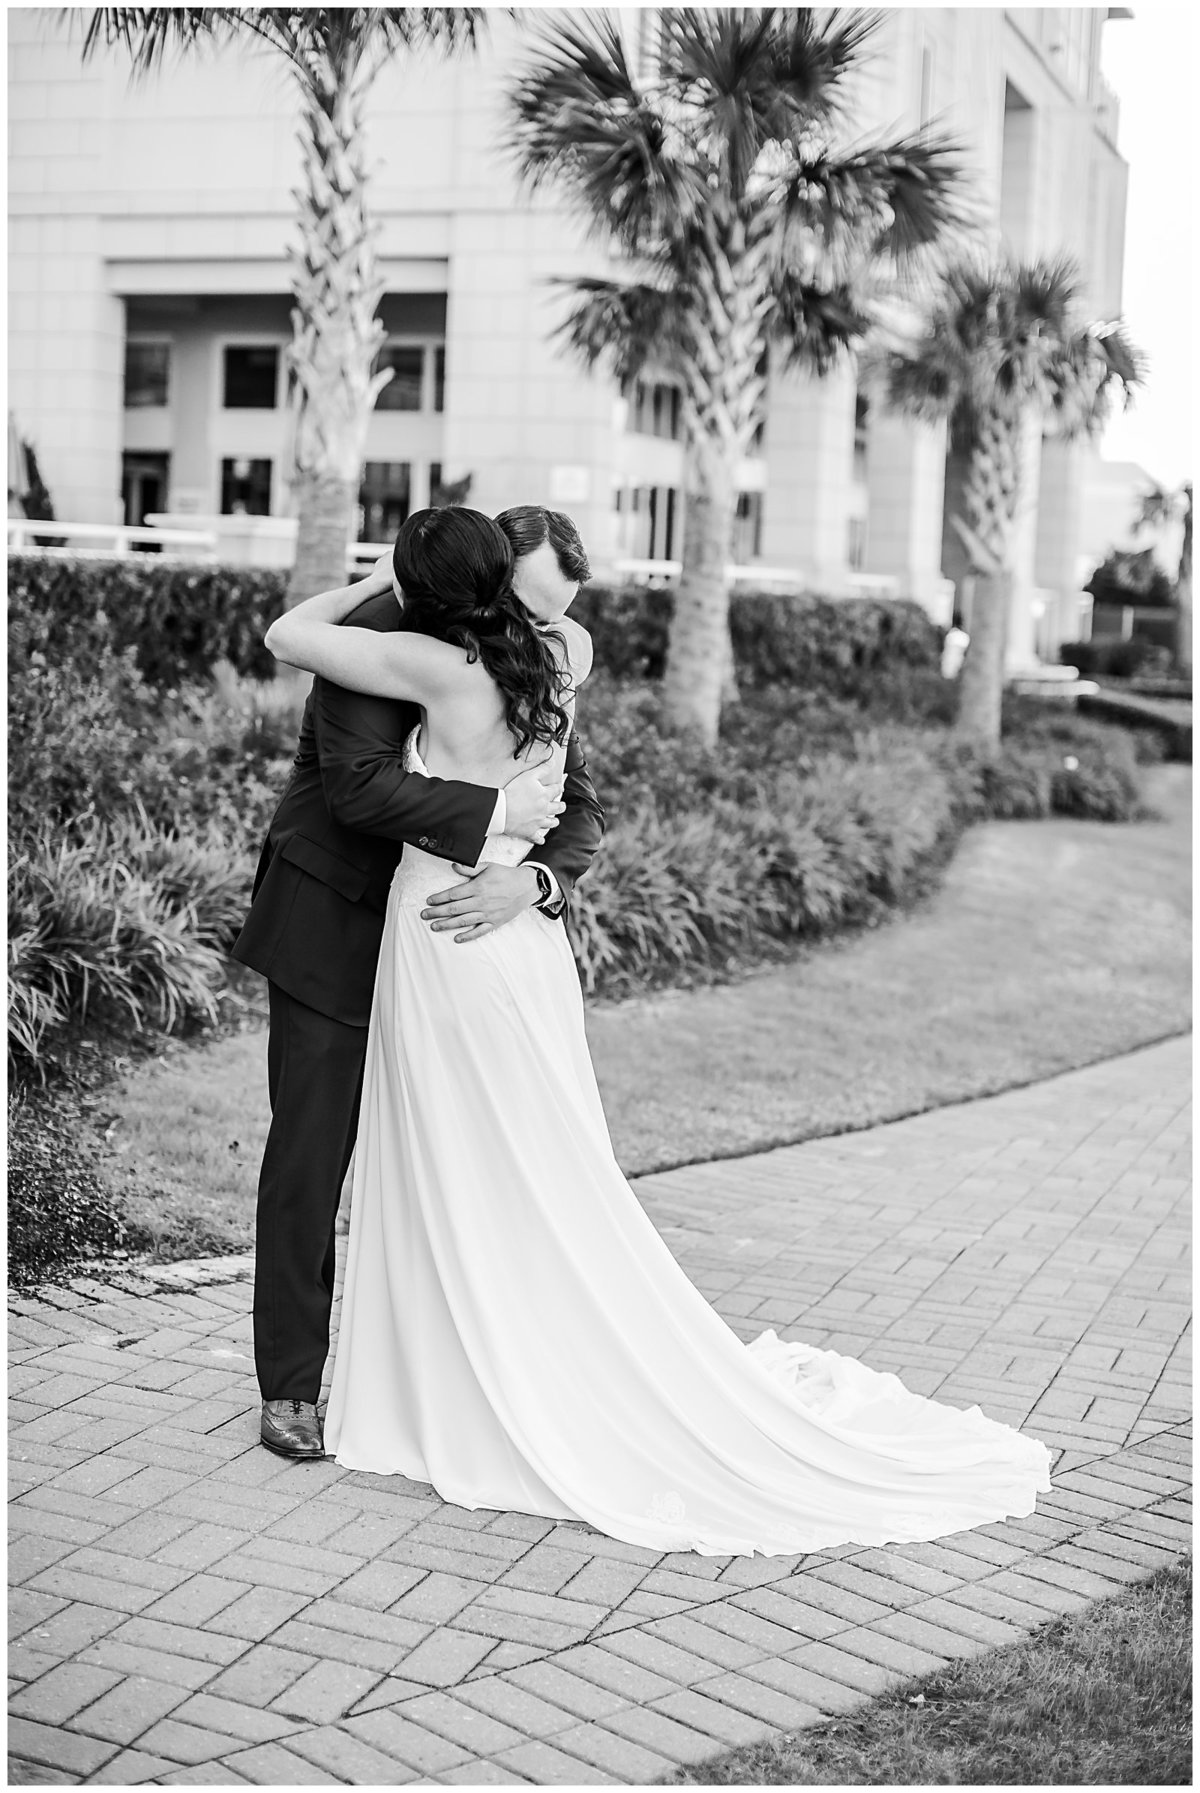 meghan lupyan hampton roads wedding photographer216